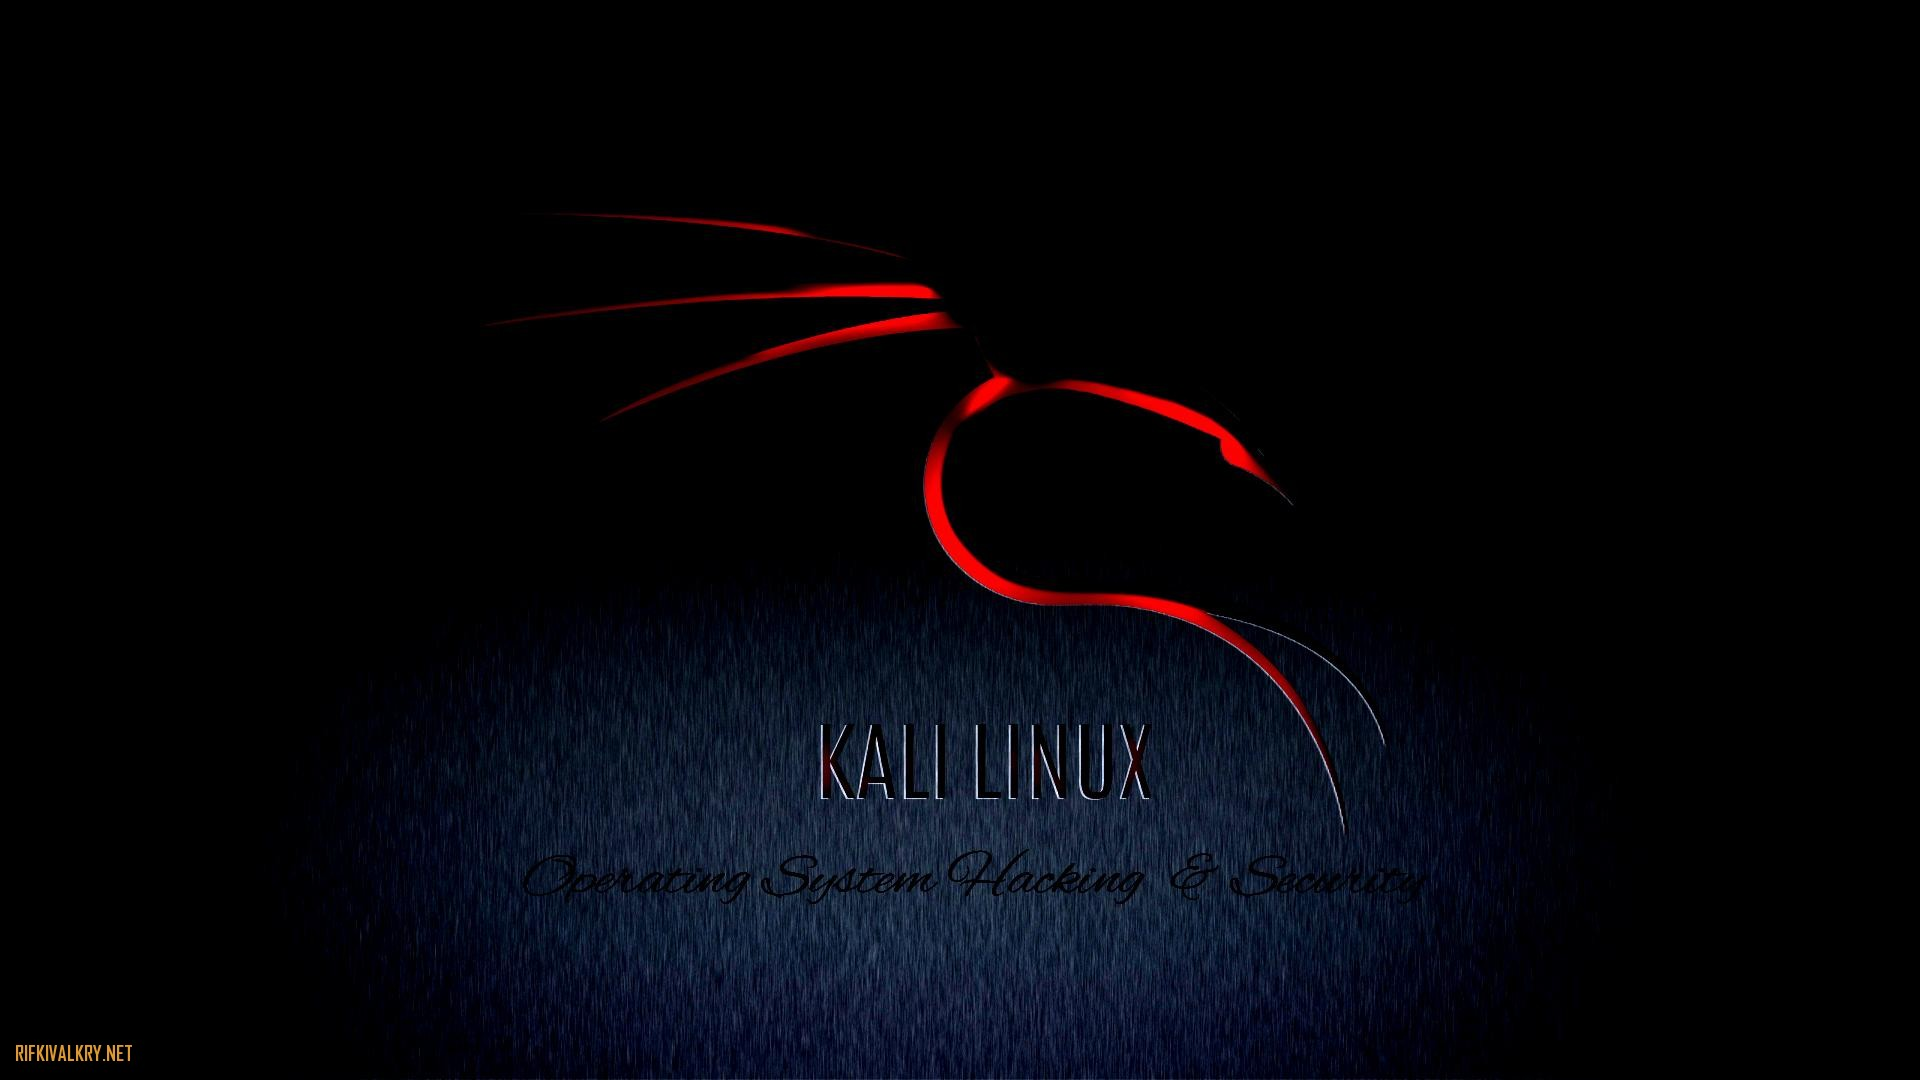 1920x1080 Best Free Kali Linux Wallpapers HD Download Now! - Blazing Mag